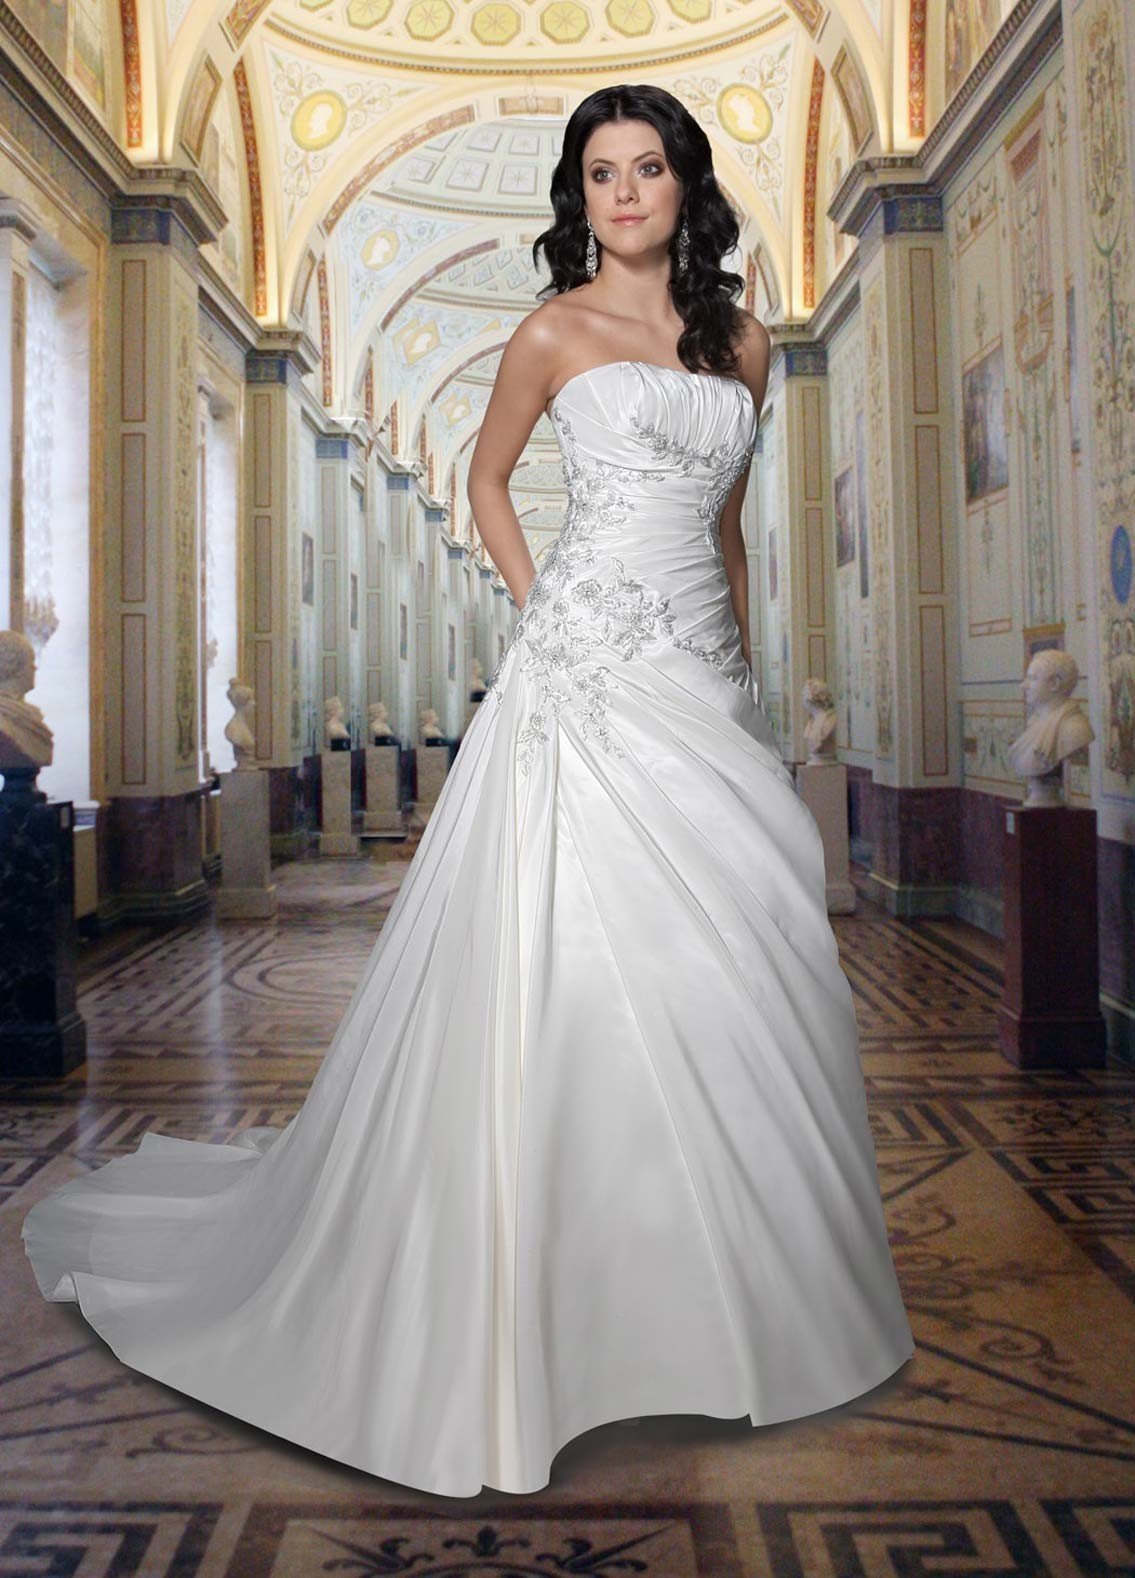 Used Wedding Dresses Under 100 Jewellery : Gorgeous a line strapless white wedding dress with sweep train sang